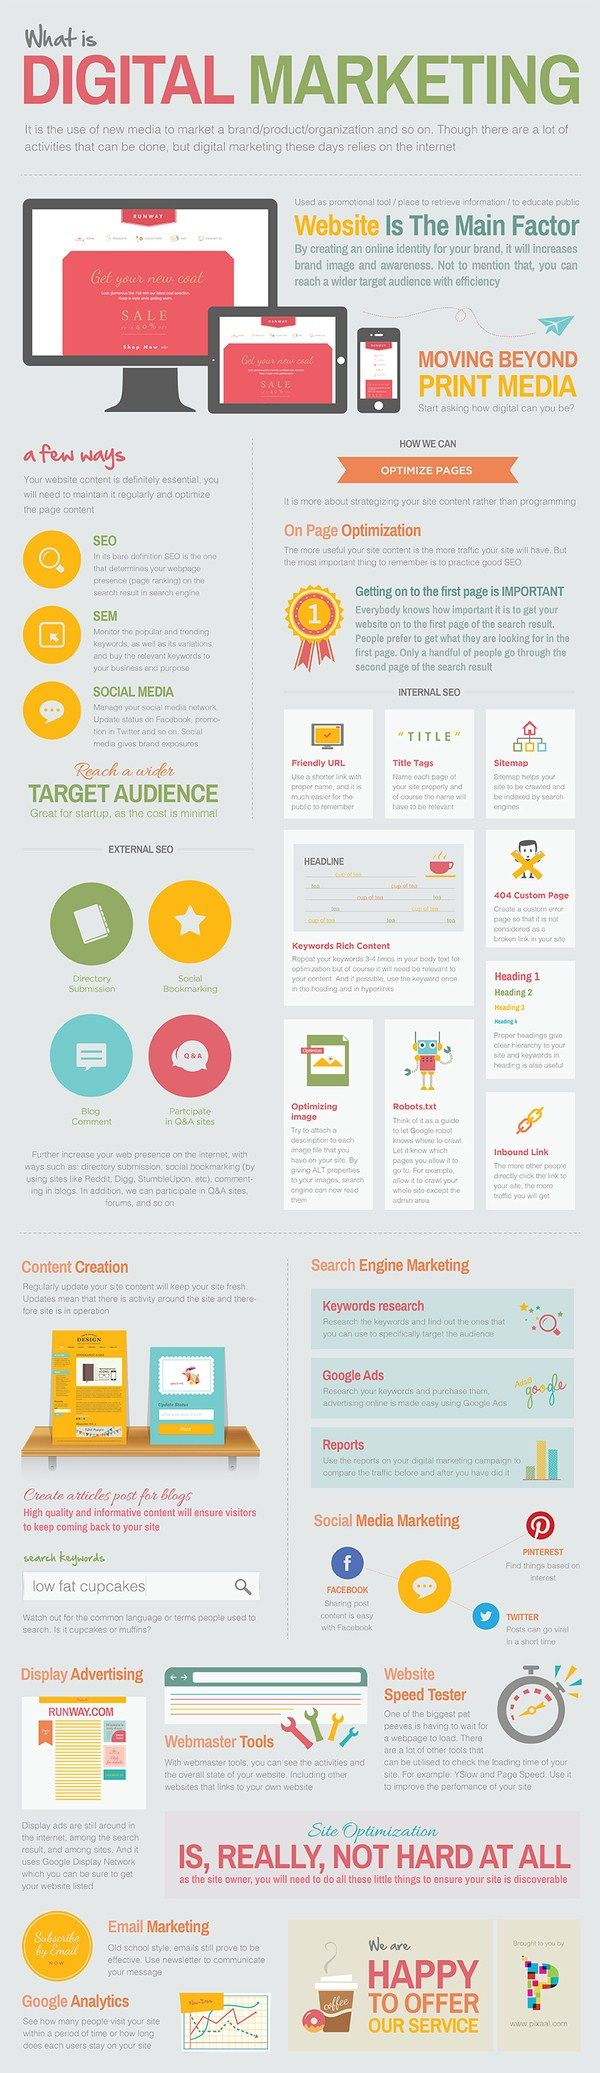 Back to basics: What Is #Digital #Marketing? [Infographic]